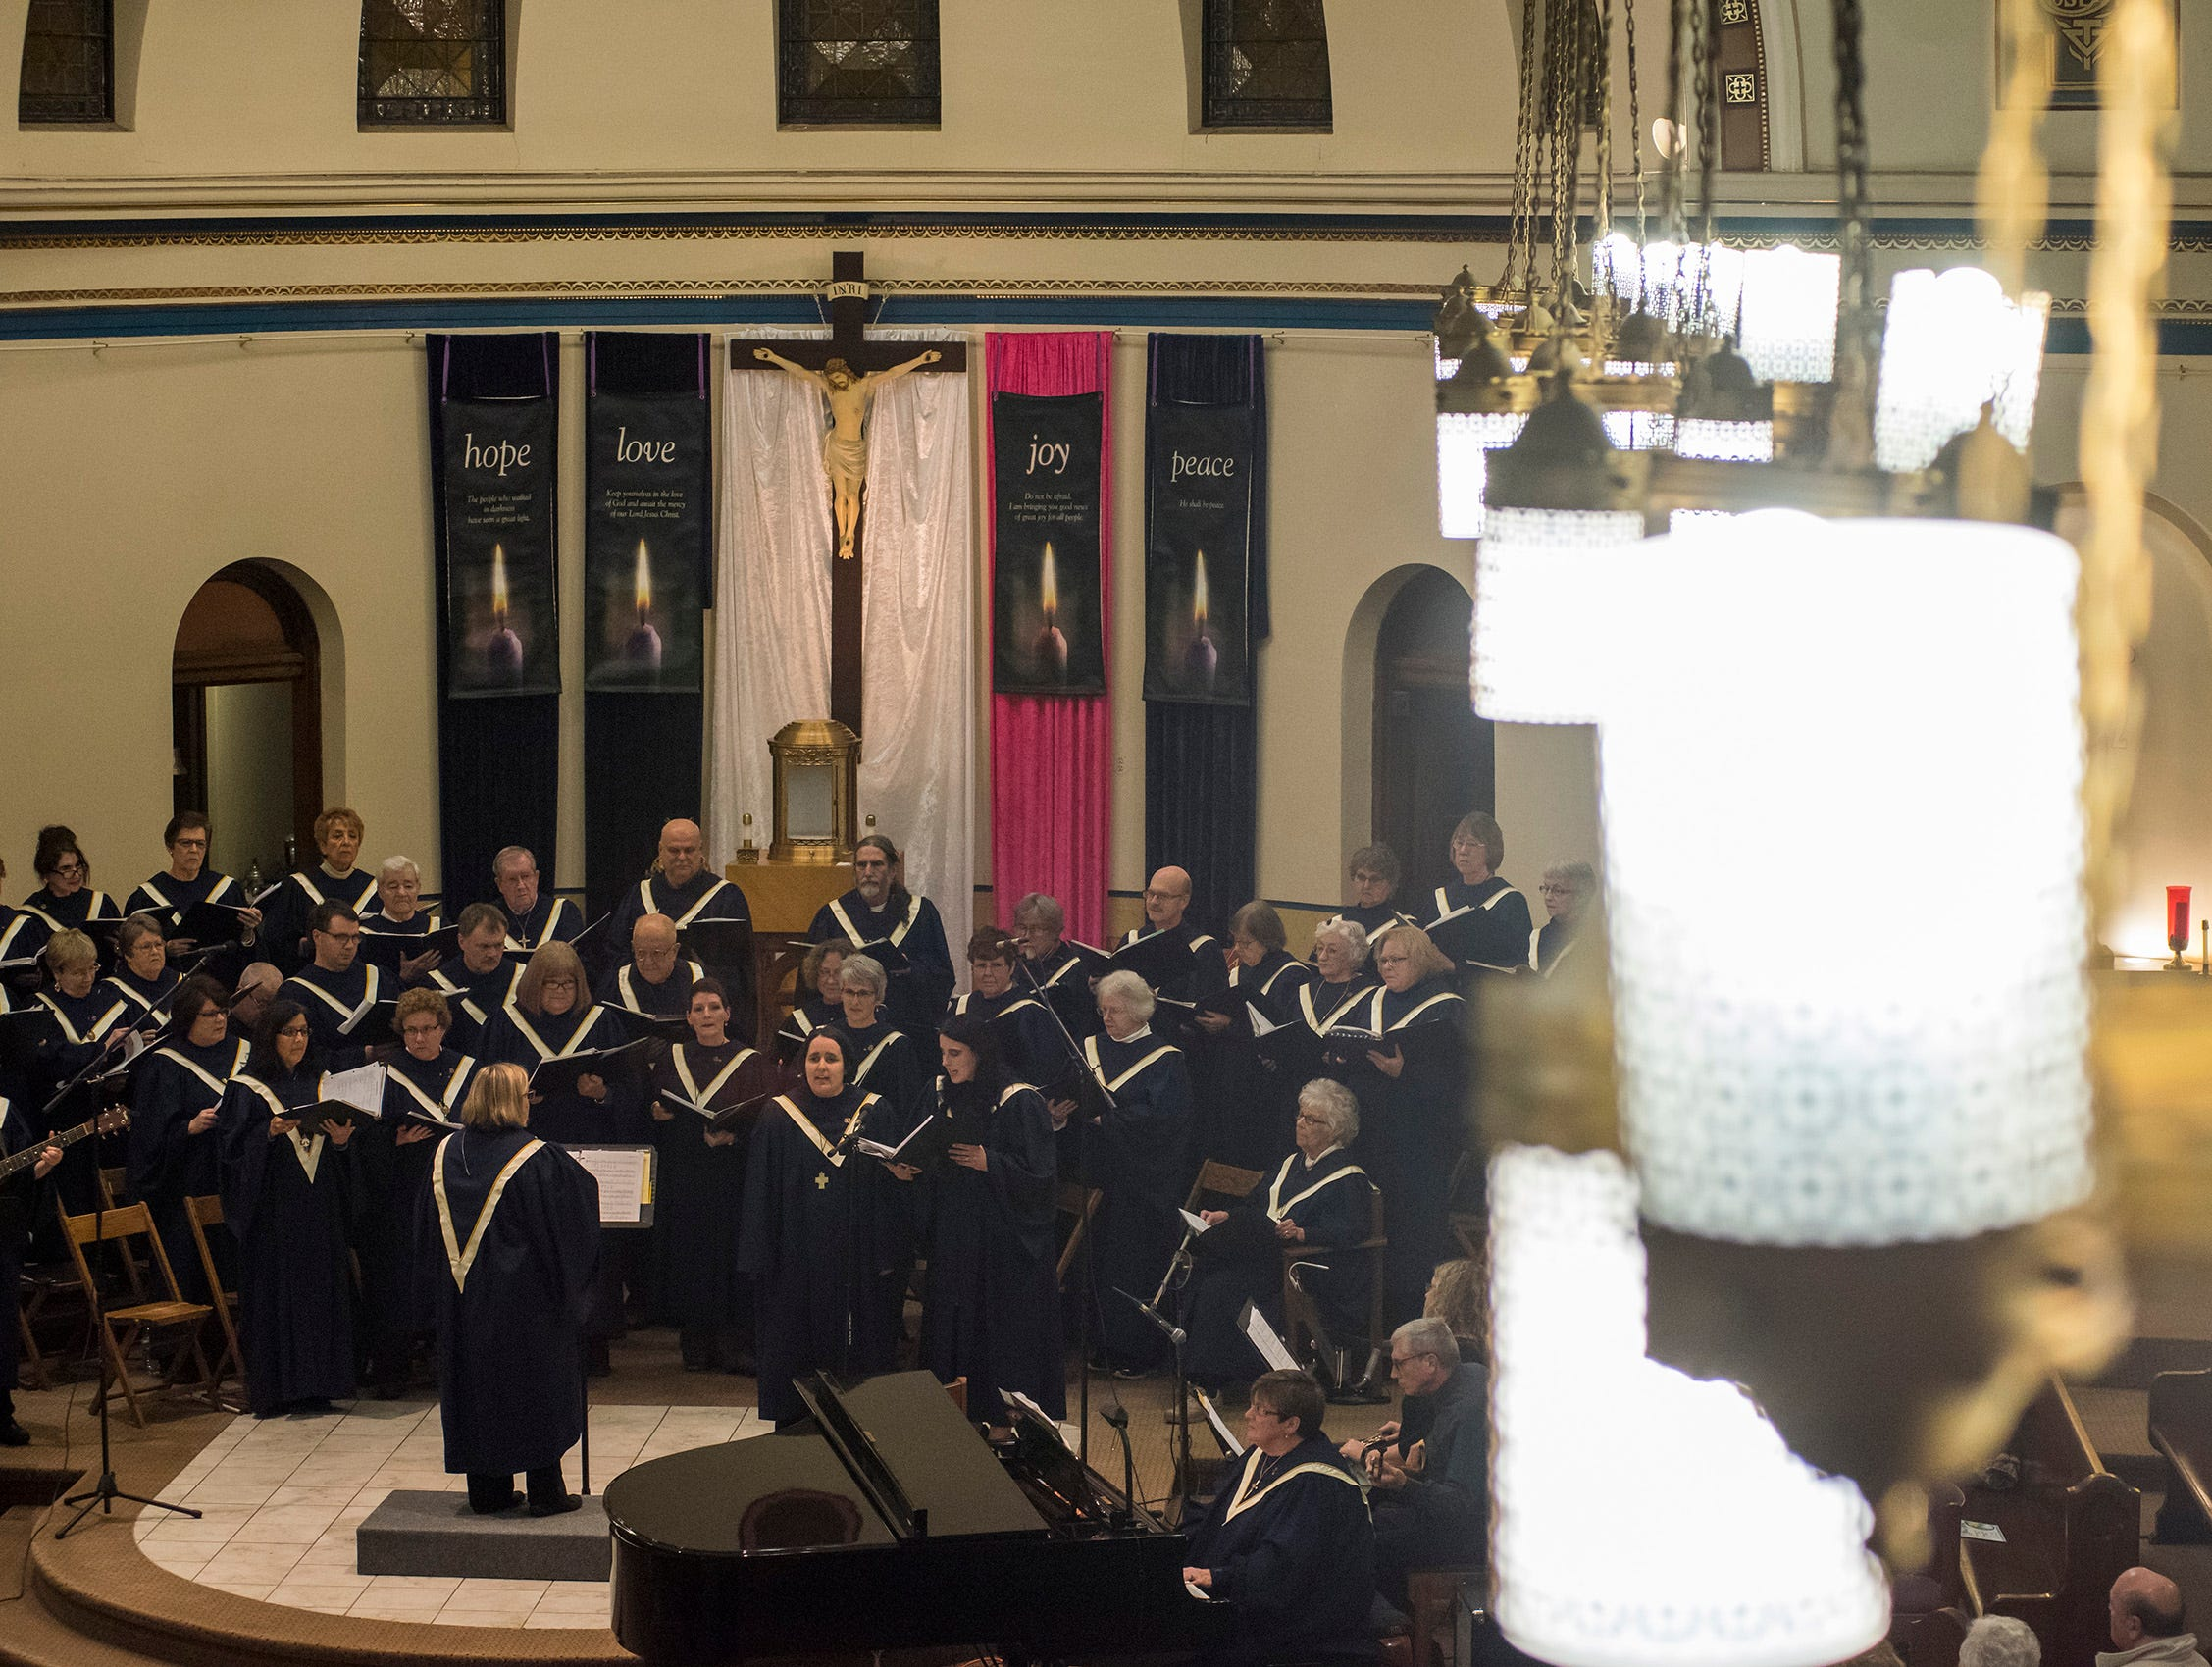 The choirs of St. Joseph of Holy Trinity Parish perform the annual Advent concert from the sanctuary of St. Joseph's Catholic Church Friday, Dec. 7, 2018 in Port Huron.